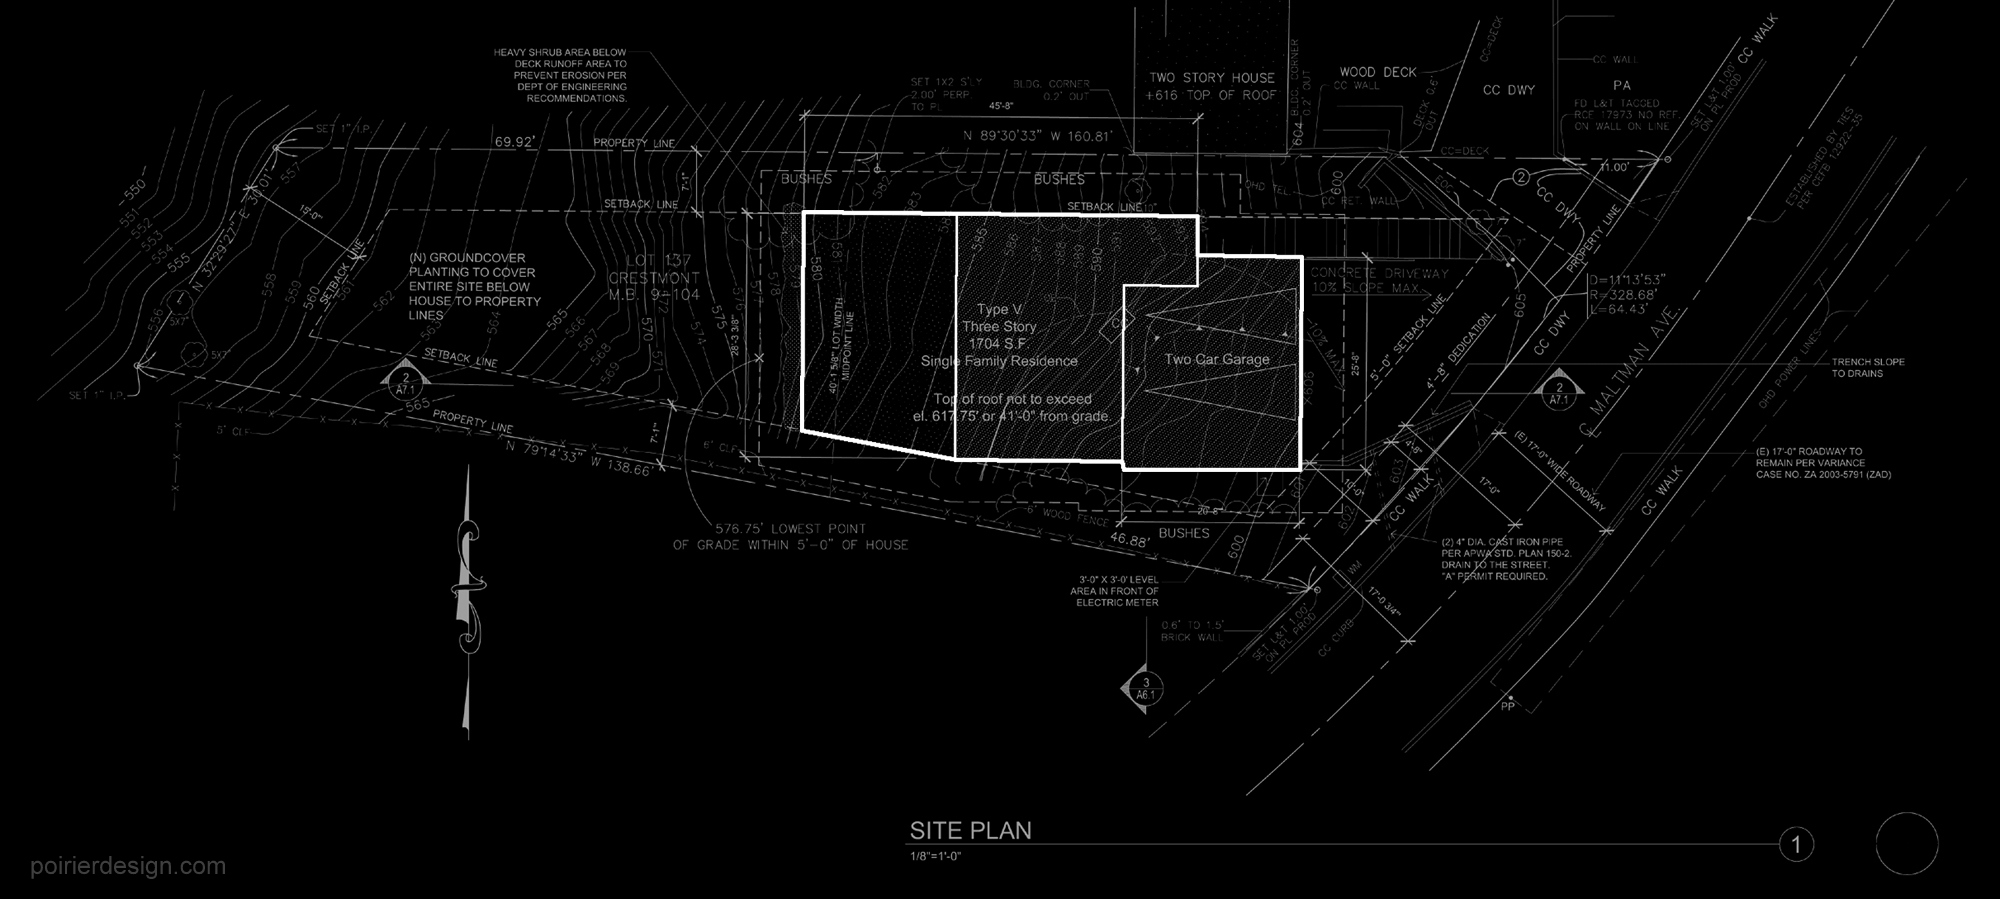 0000-0301-A1.0-Site-Plan-copy.jpg